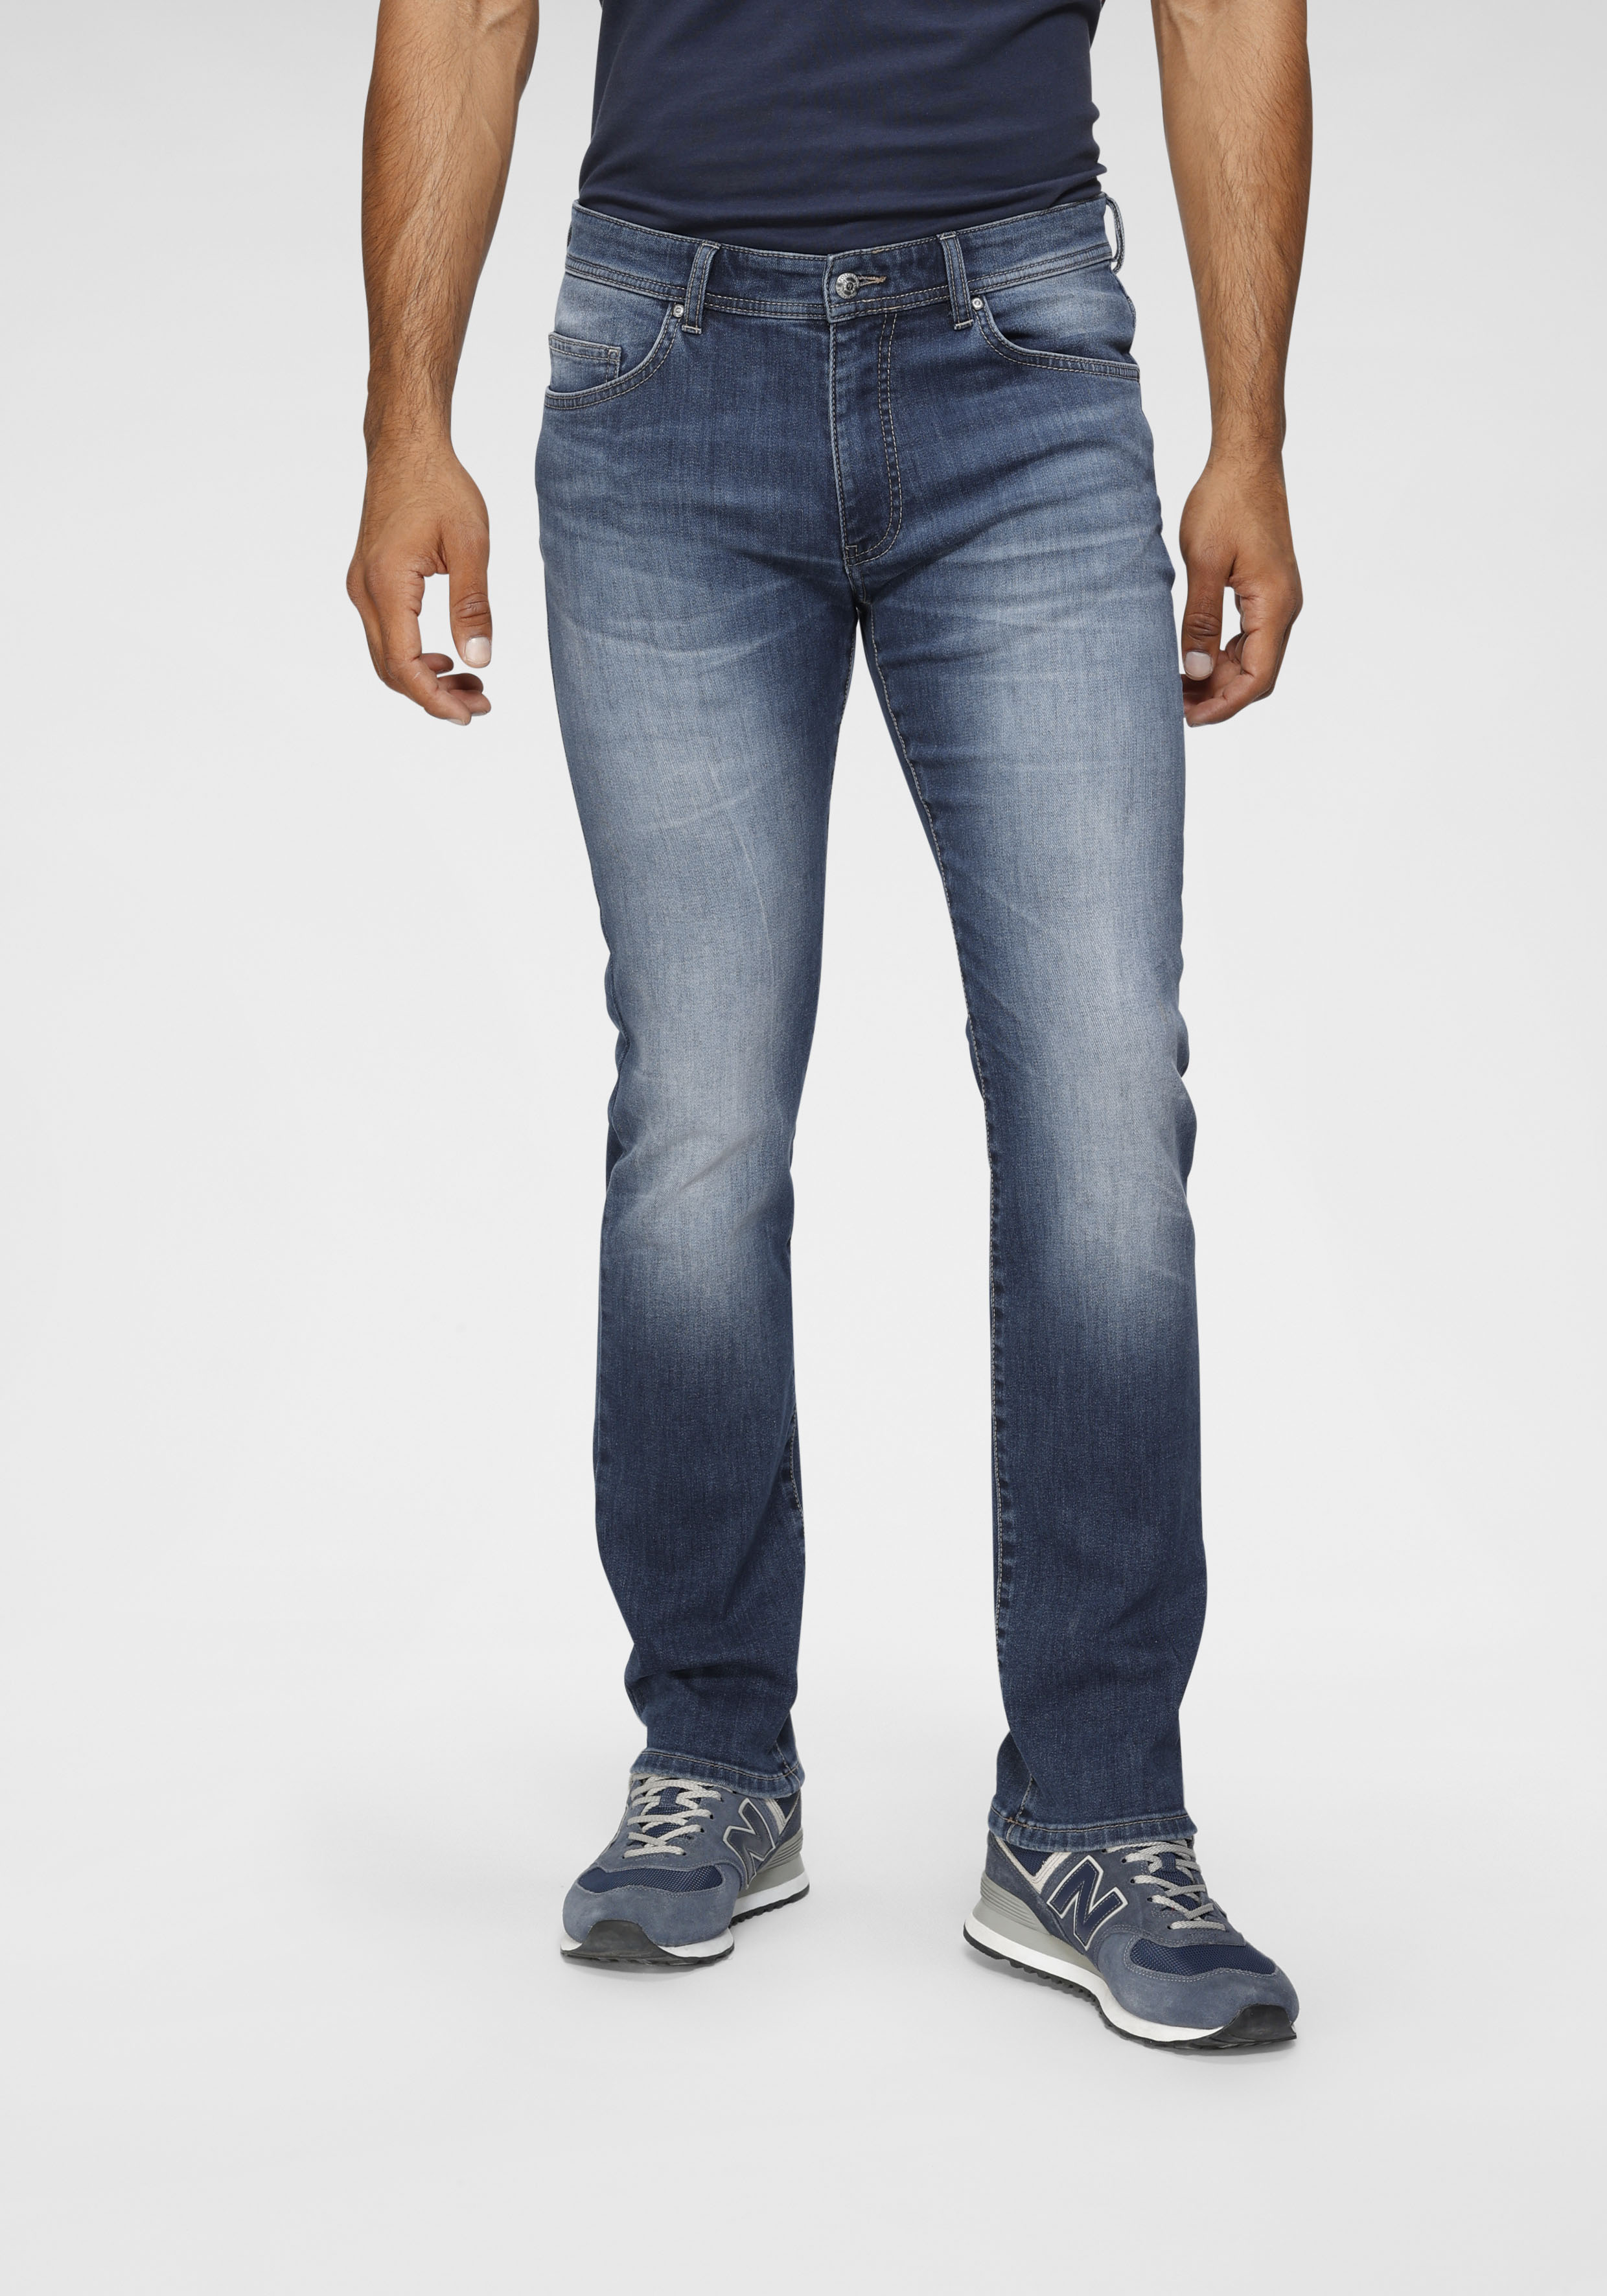 tom tailor polo team -  5-Pocket-Jeans DAVIS, mit used Waschung